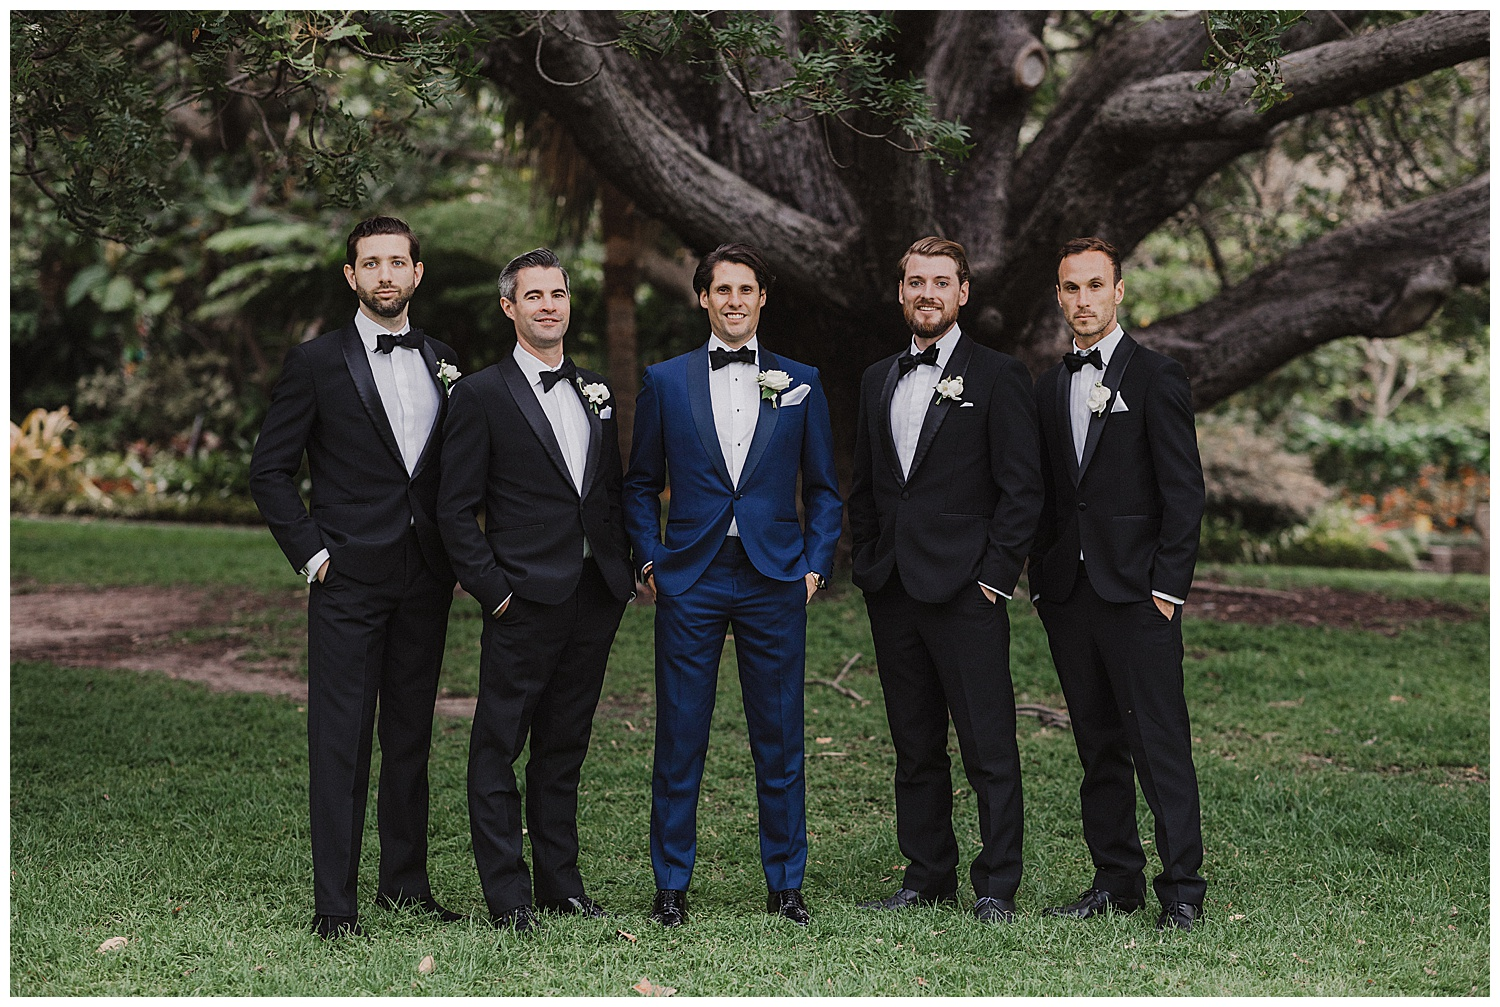 Groom and Groomsmen at the Royal Botanic Gardens after Sydney Wedding